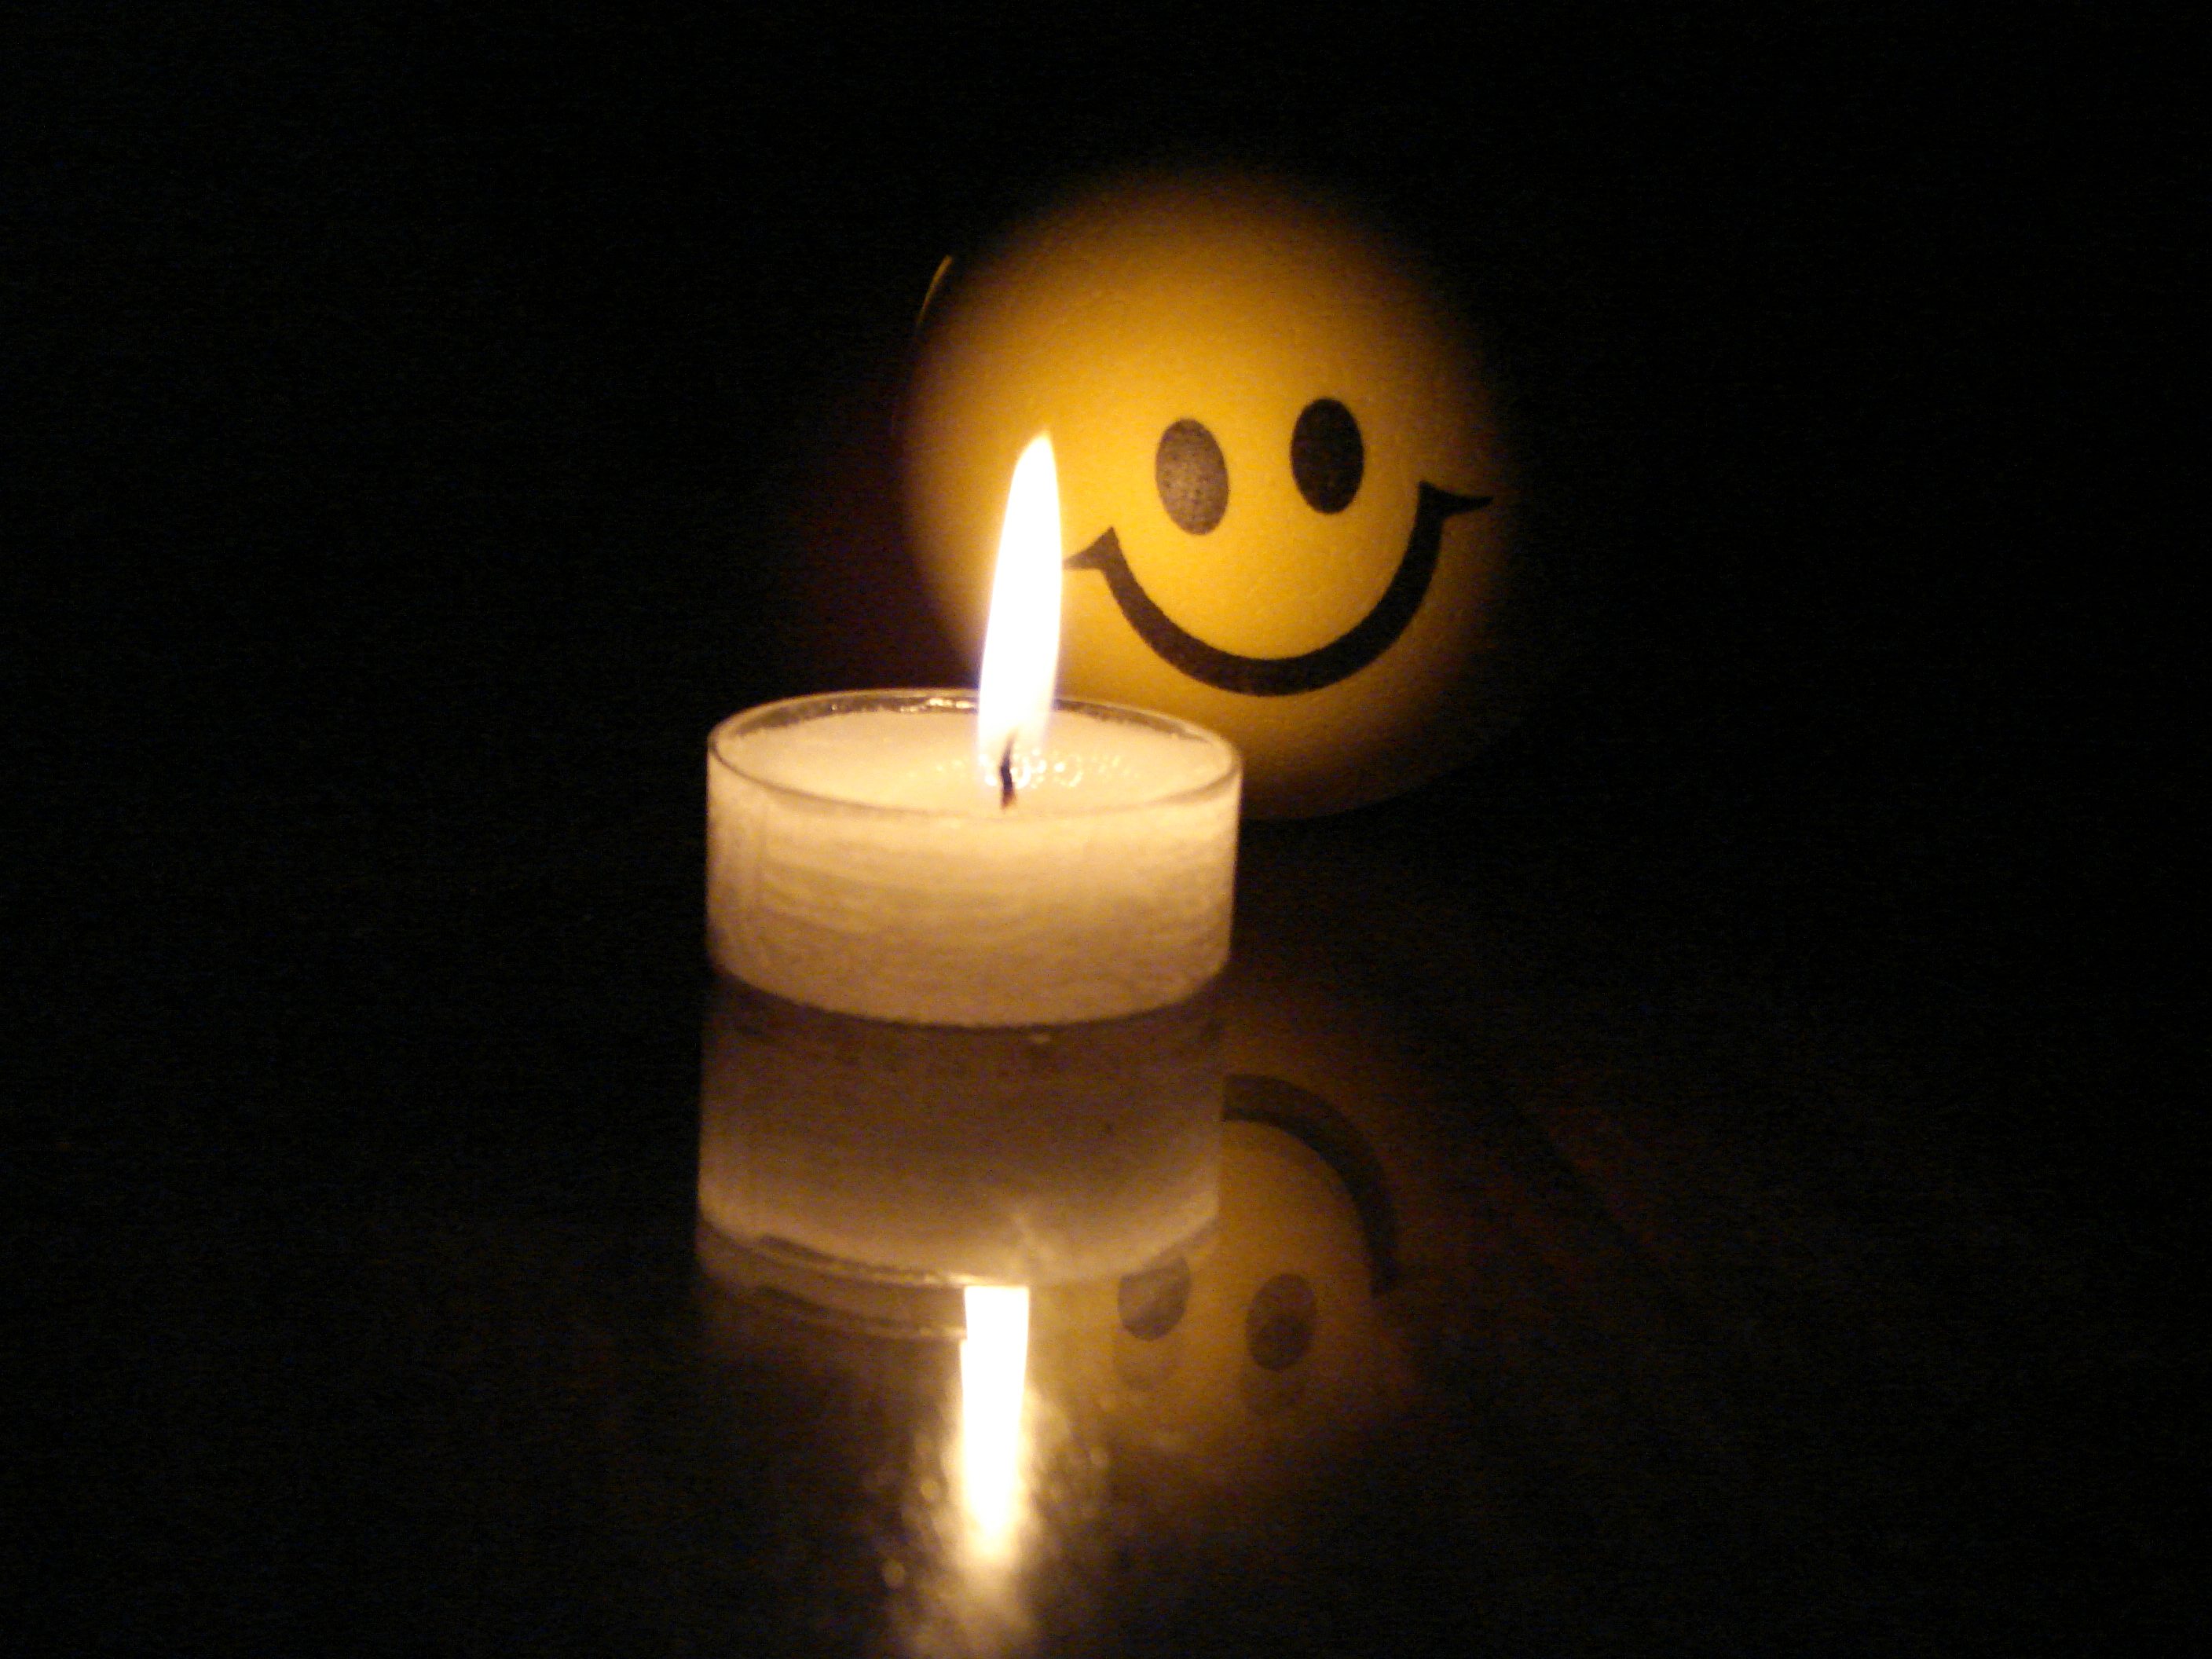 Little candle with funny face photo